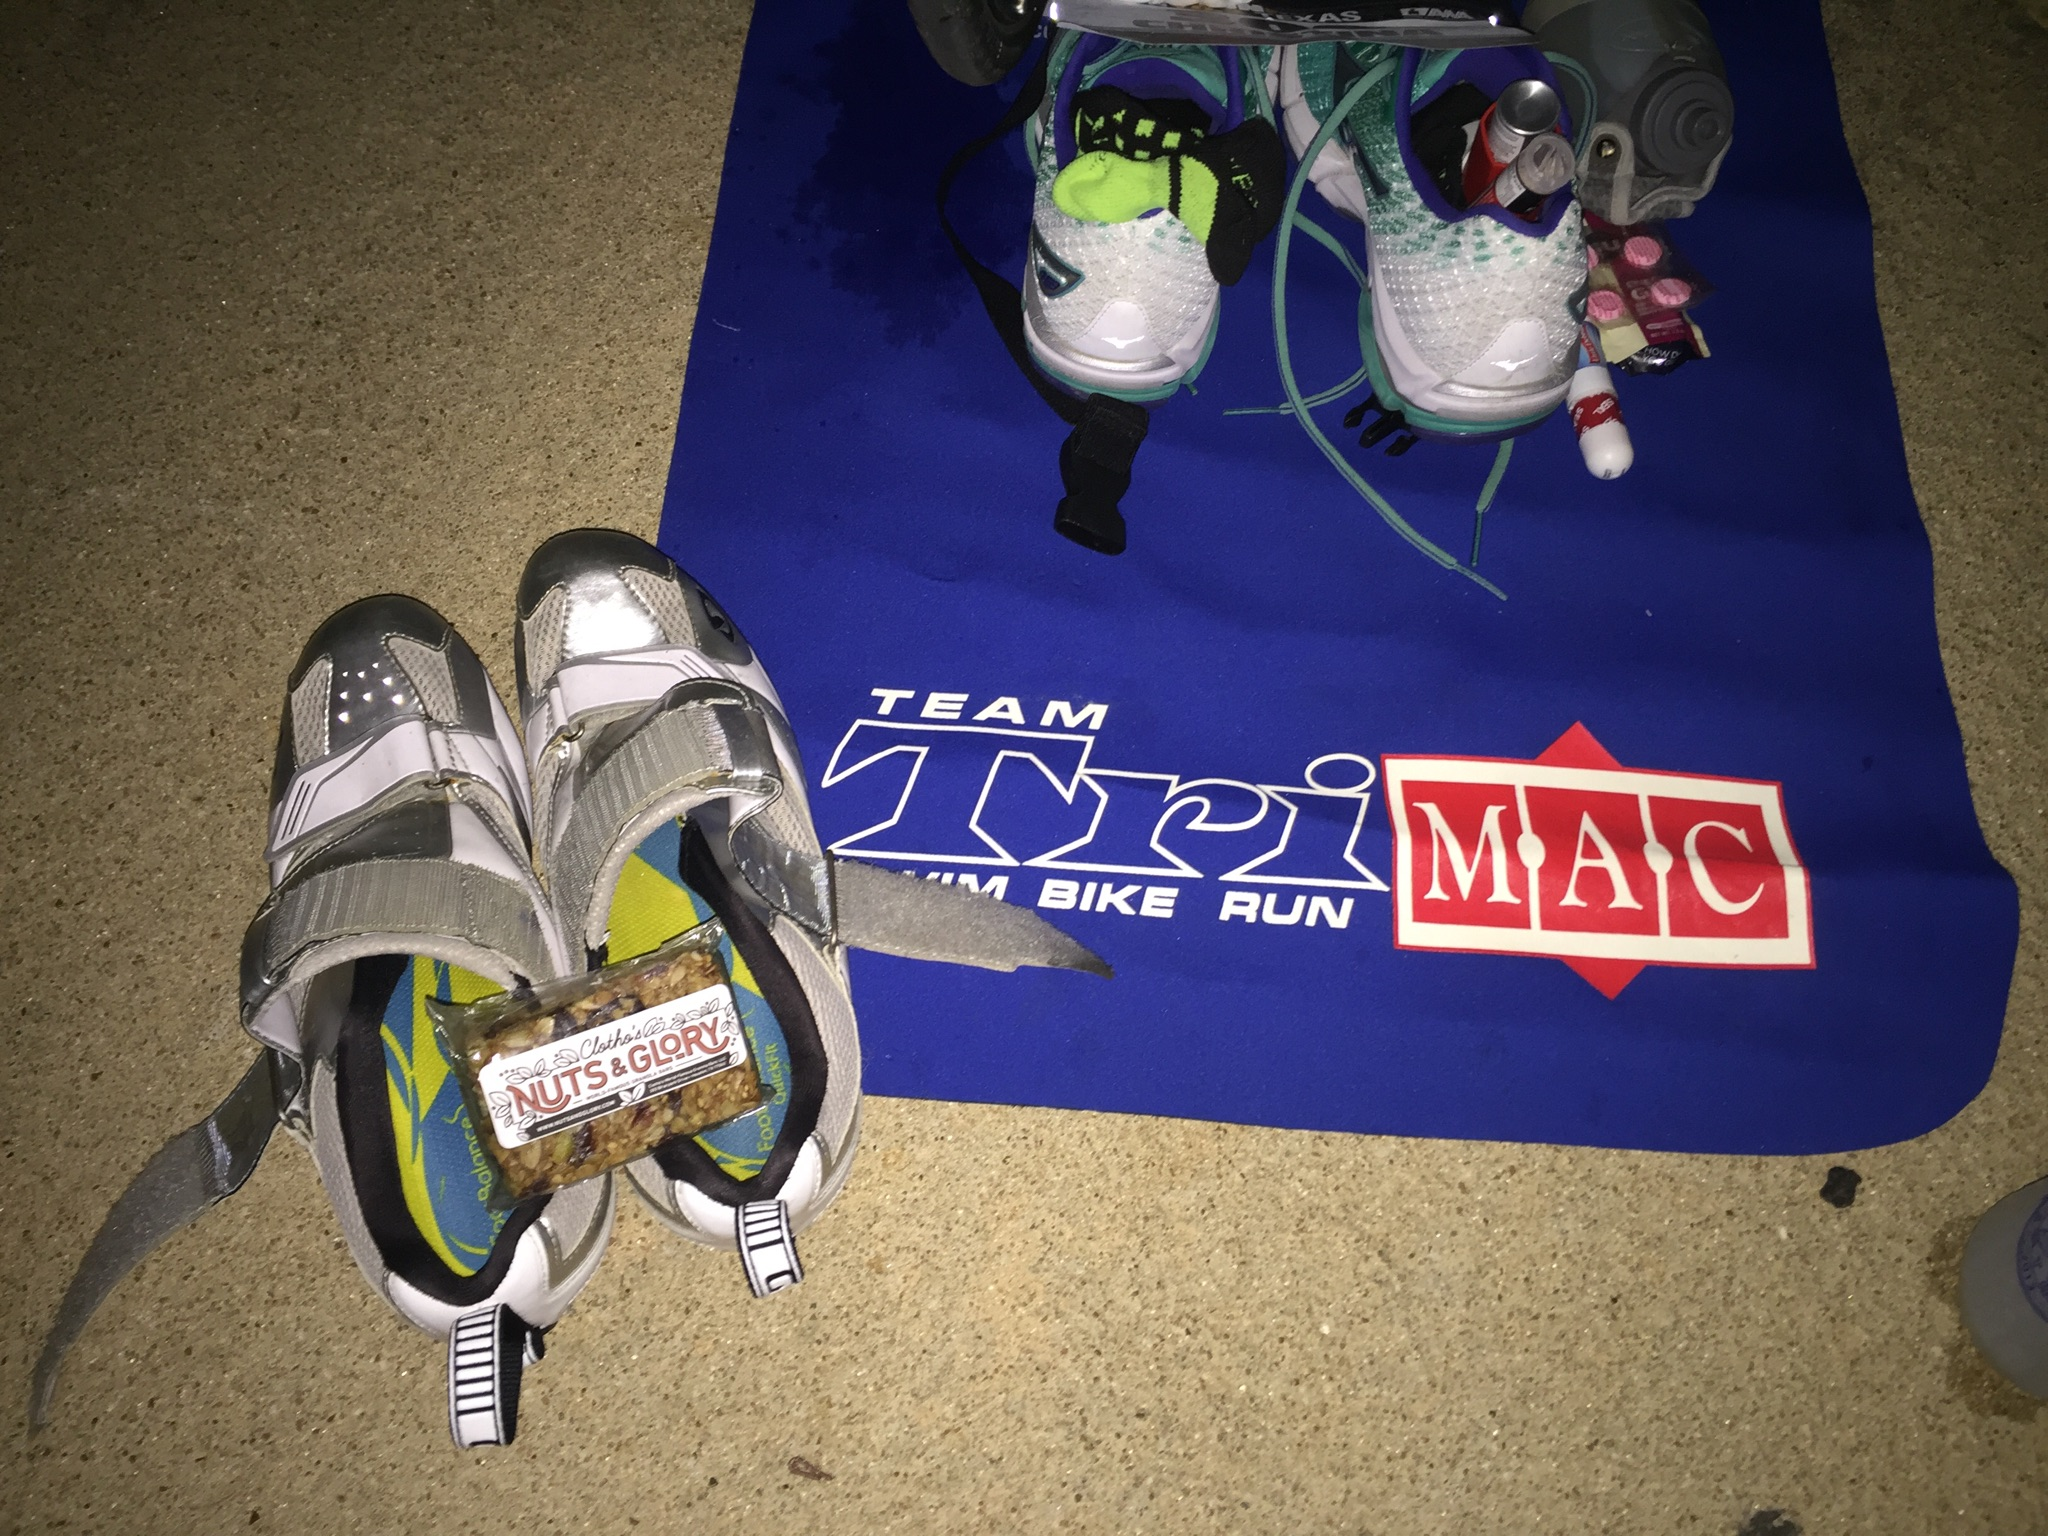 Christina from Houston sent this photo of her transition mat, taken in the pre-dawn hours before Ironman Texas 70.3. Check out that Nuts and Glory granola bar placed strategically on her cycling shoes...ready to go! Super awesome. Thanks Christina!